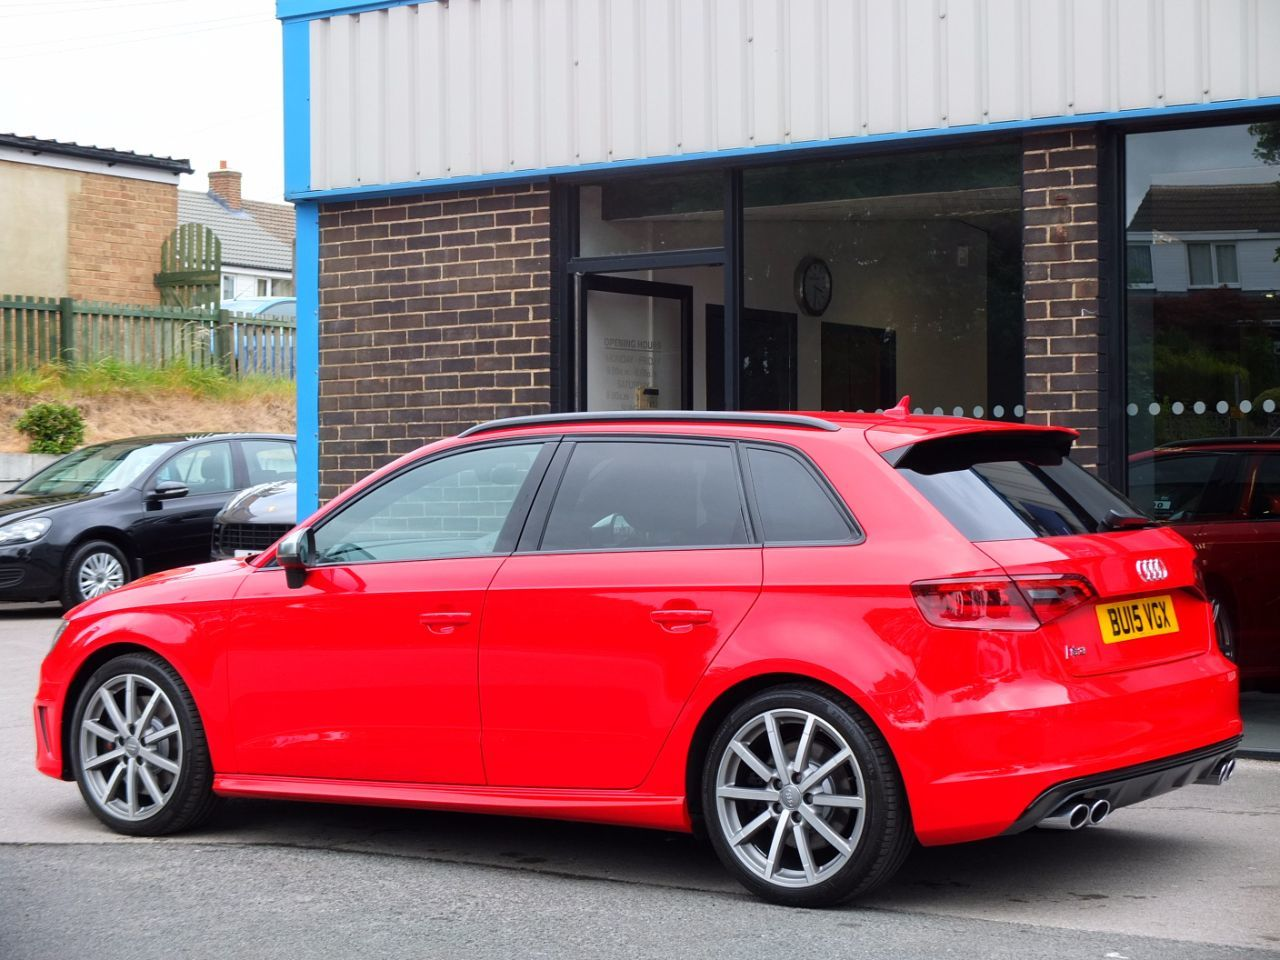 used audi a3 s3 sportback 2 0 tfsi quattro s tronic for. Black Bedroom Furniture Sets. Home Design Ideas